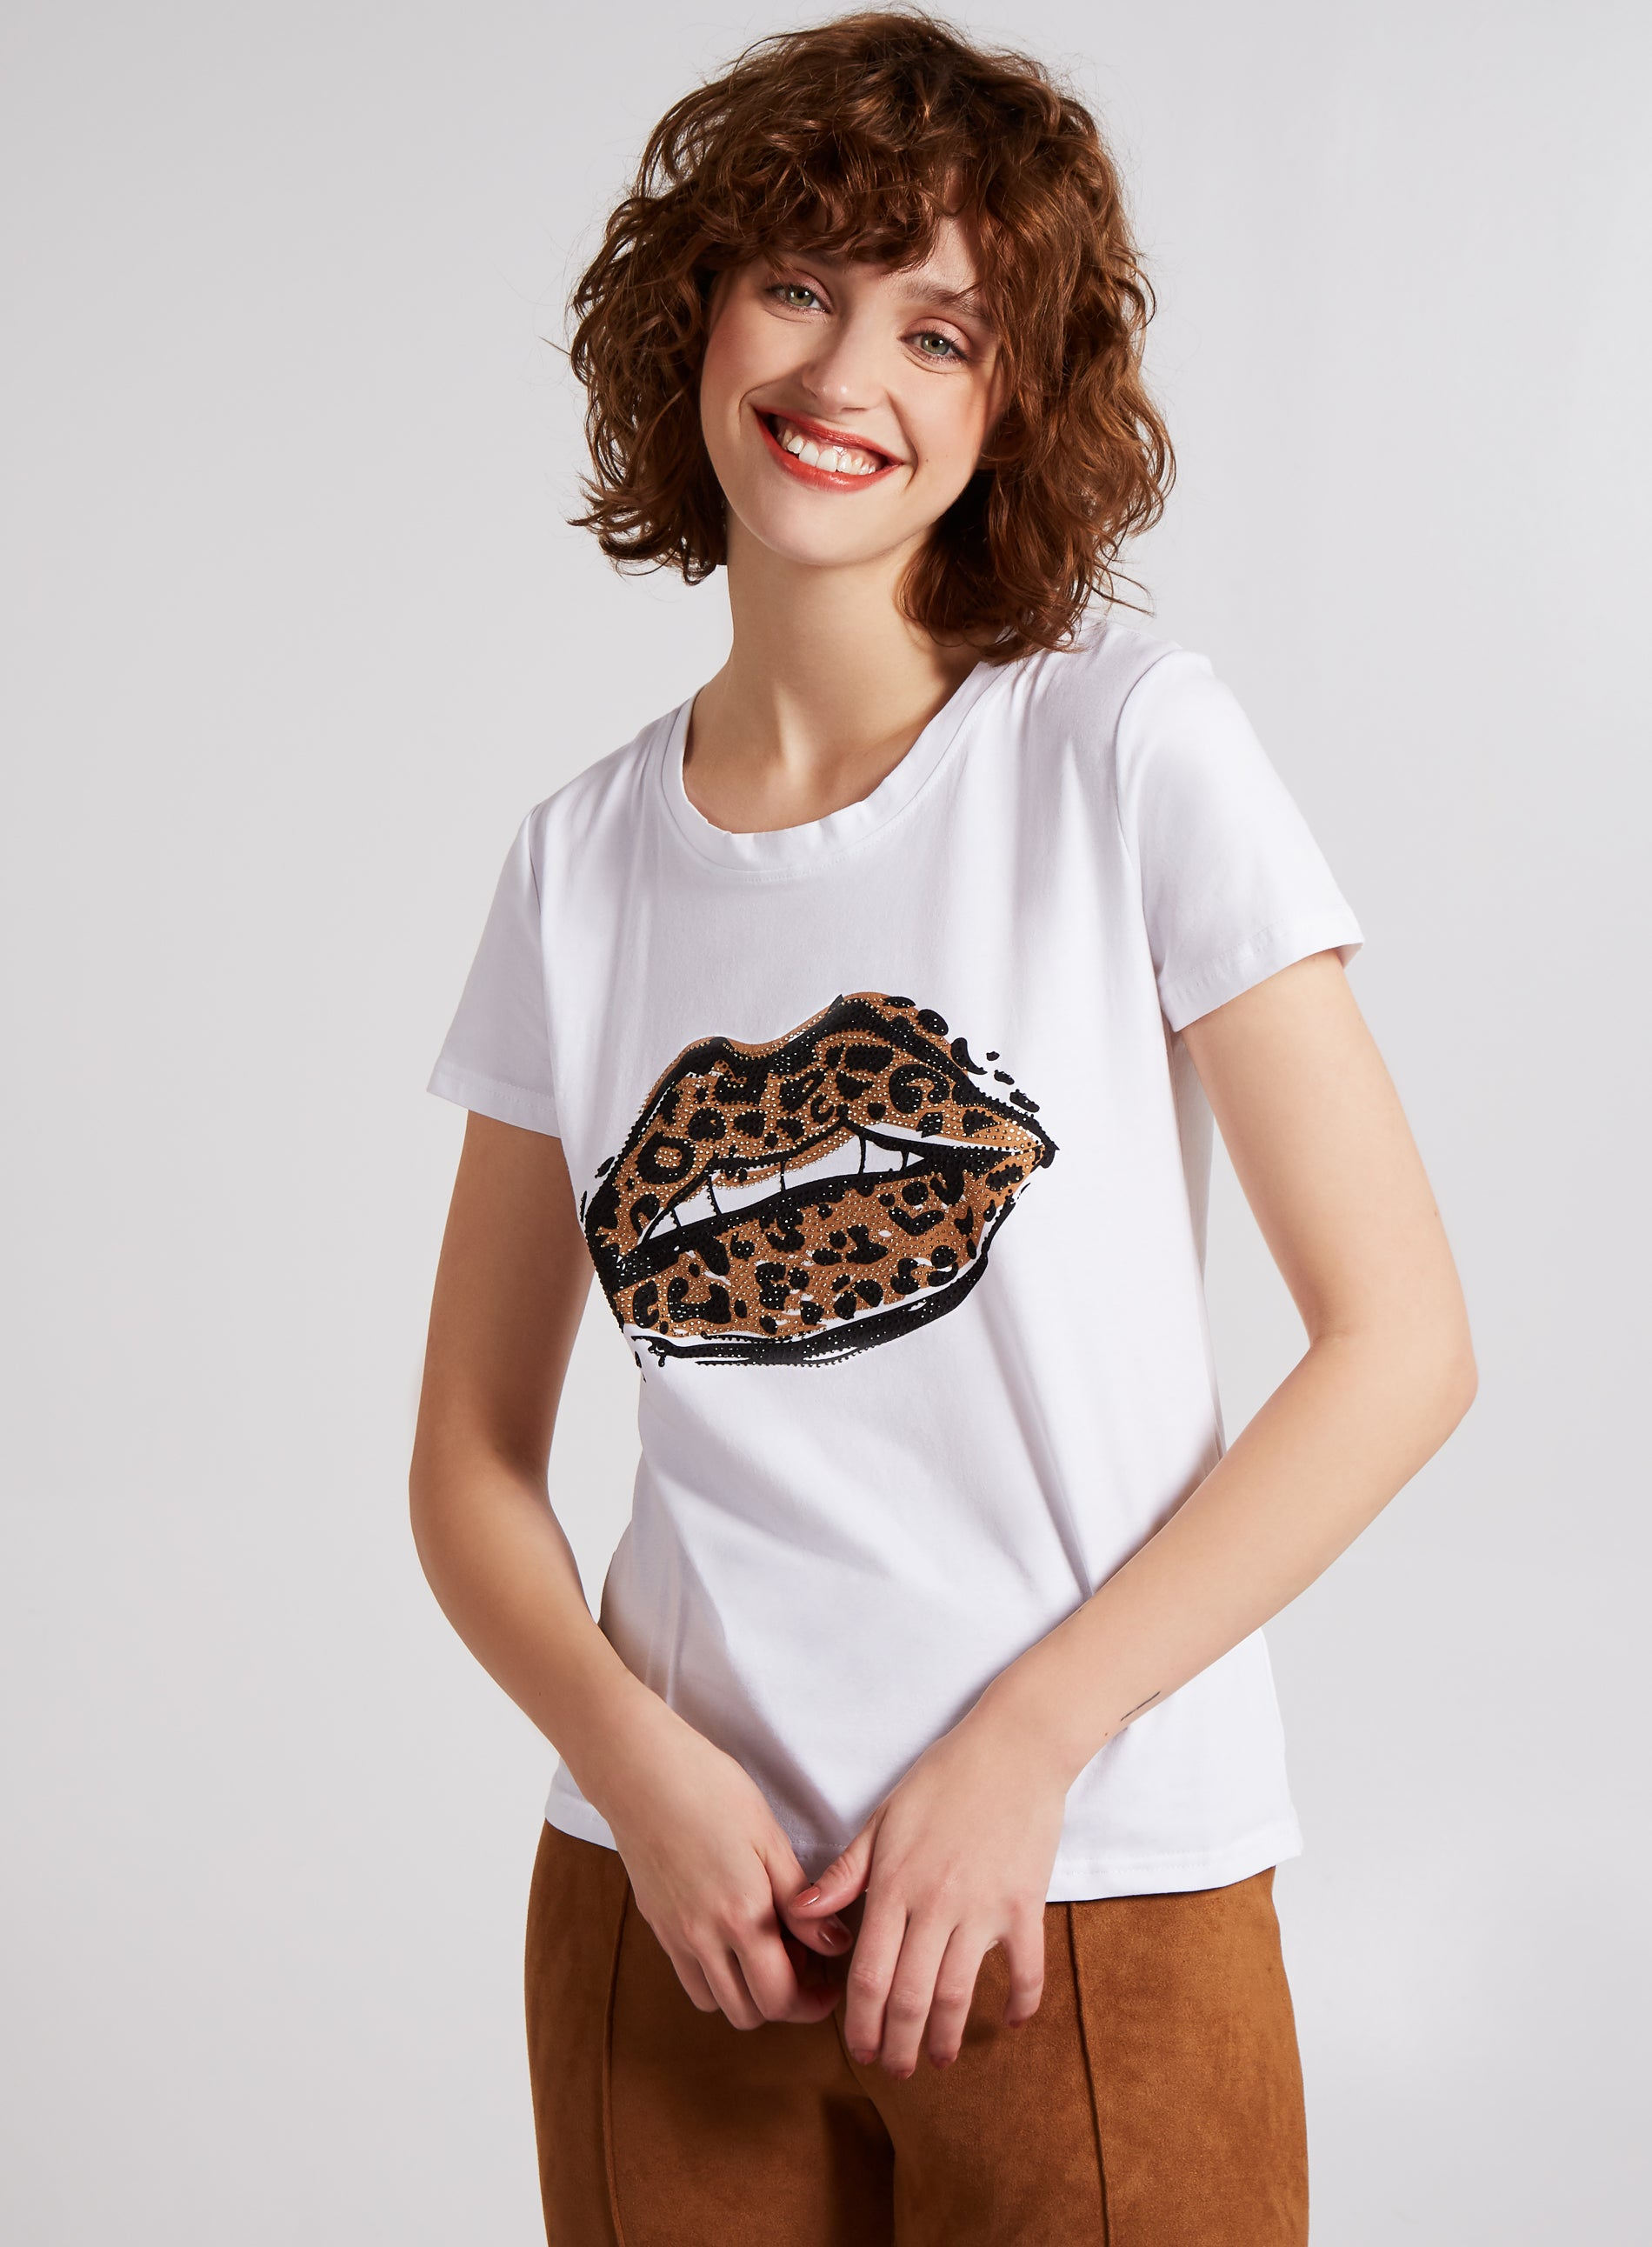 DYNAMIC - Leopard Lips T Shirt